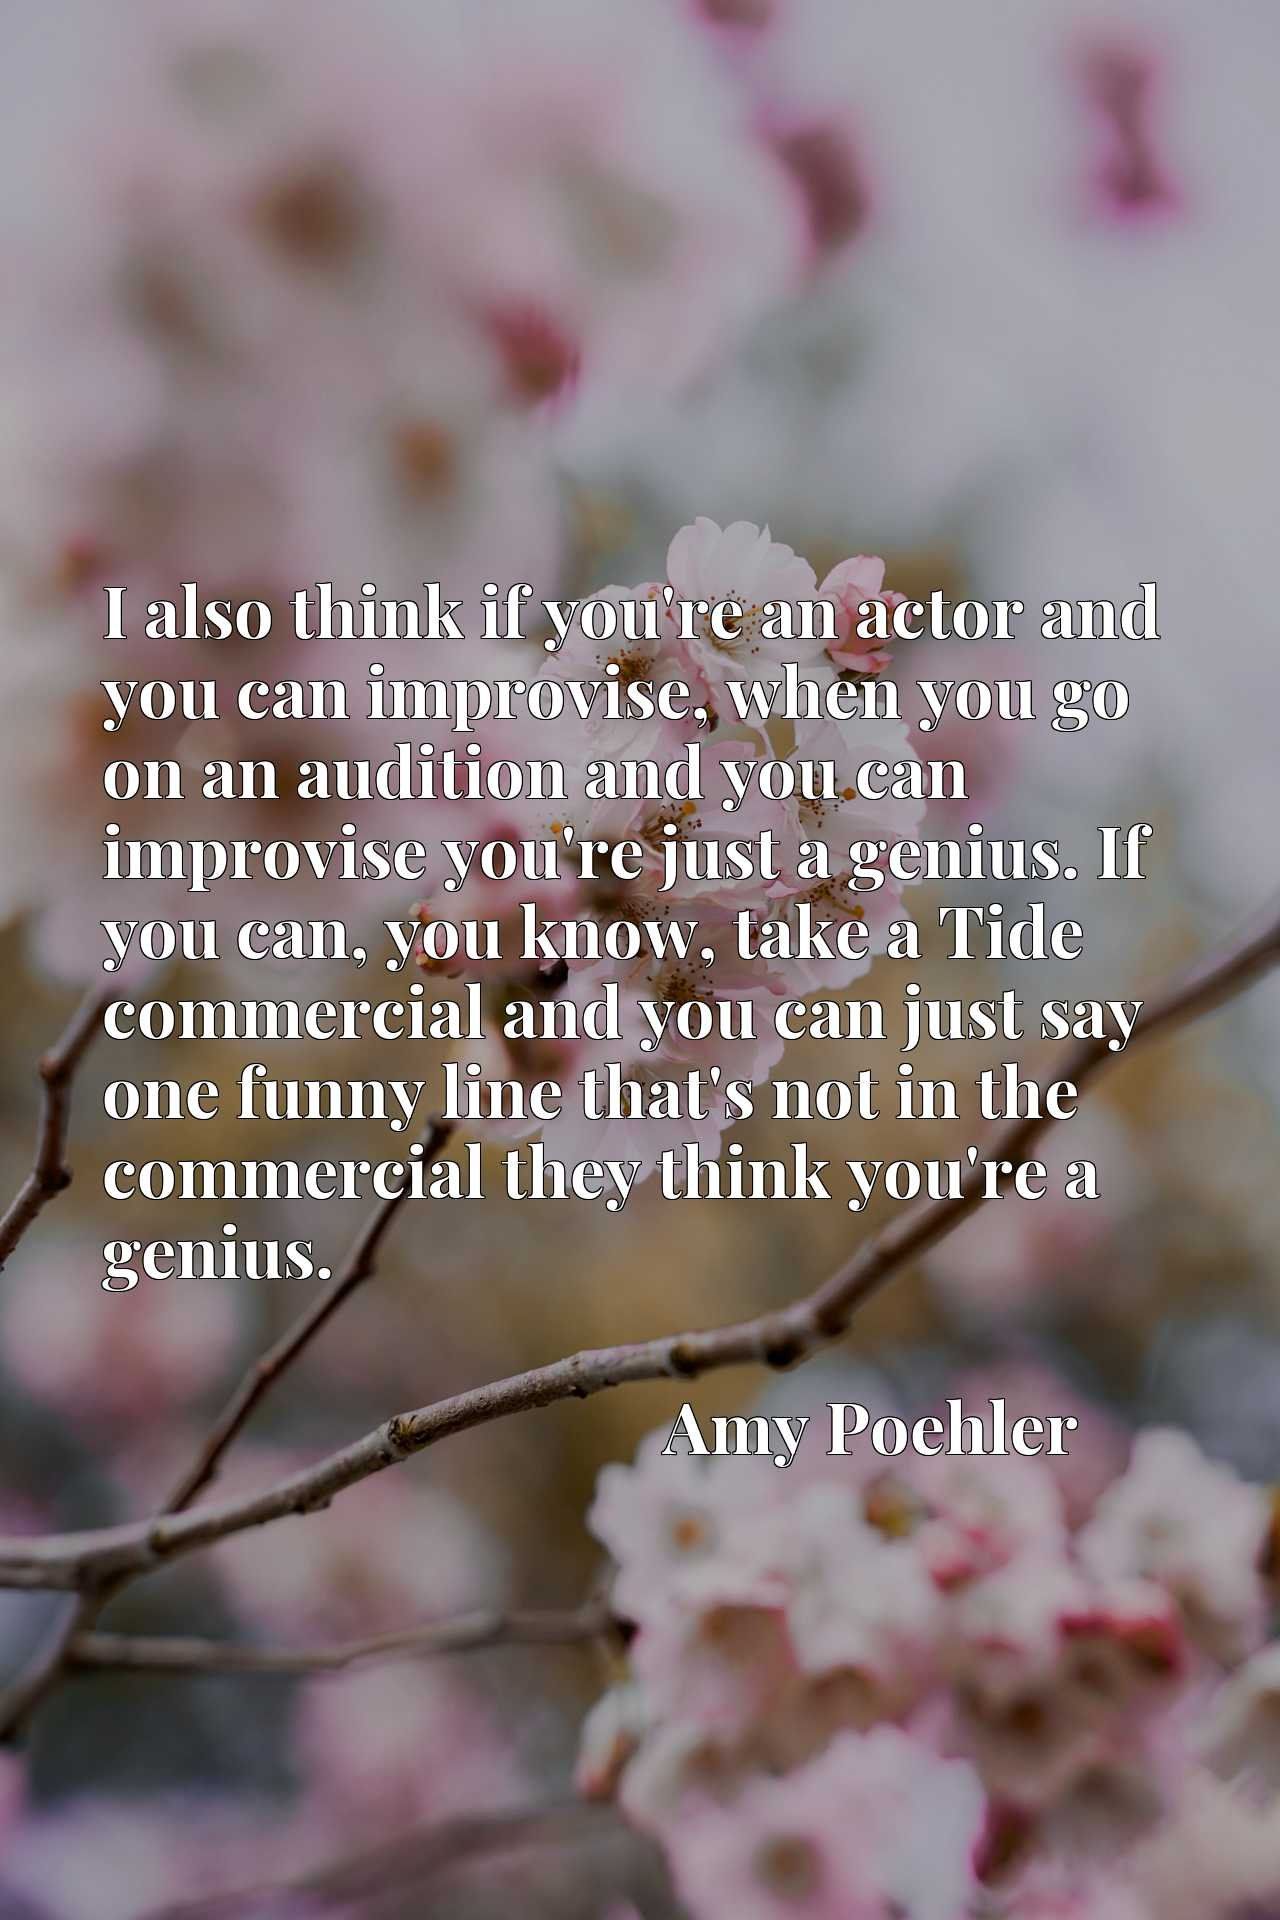 I also think if you're an actor and you can improvise, when you go on an audition and you can improvise you're just a genius. If you can, you know, take a Tide commercial and you can just say one funny line that's not in the commercial they think you're a genius.